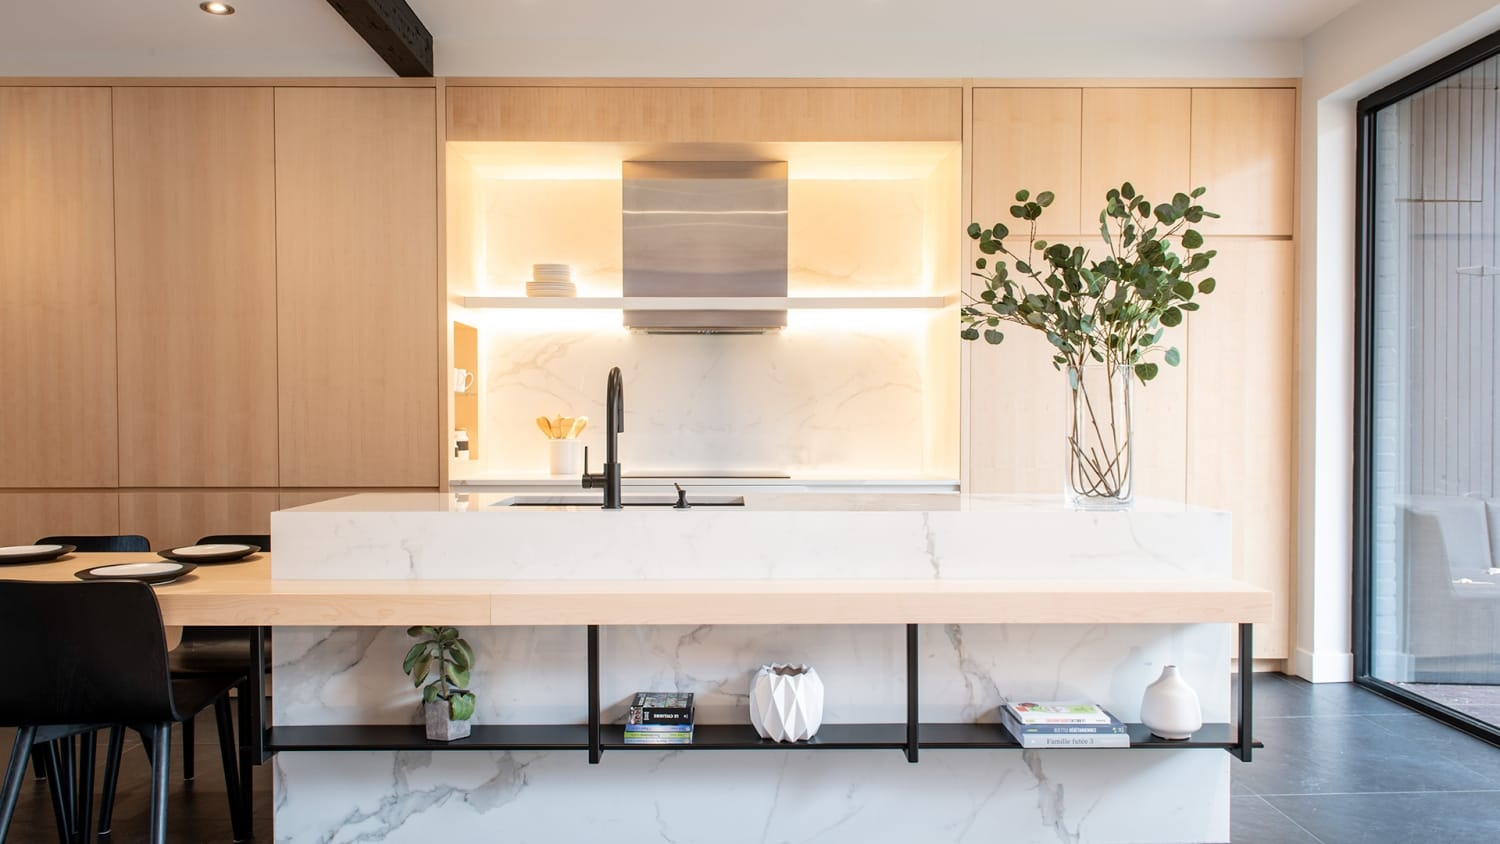 Chambord Project | Kitchen and dining room renovation – Capital 6